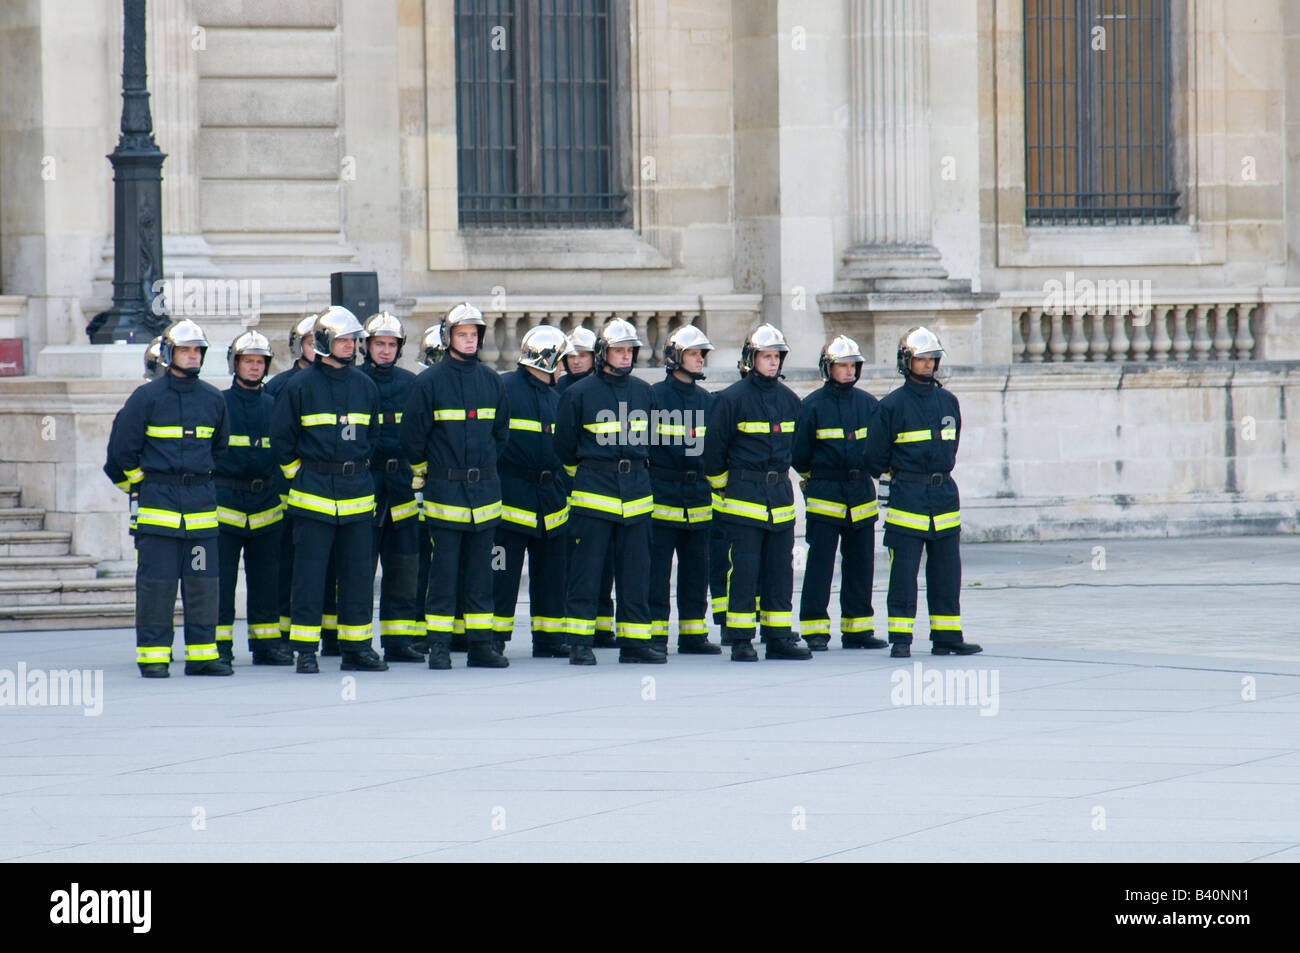 A french  fire crew array - Stock Image